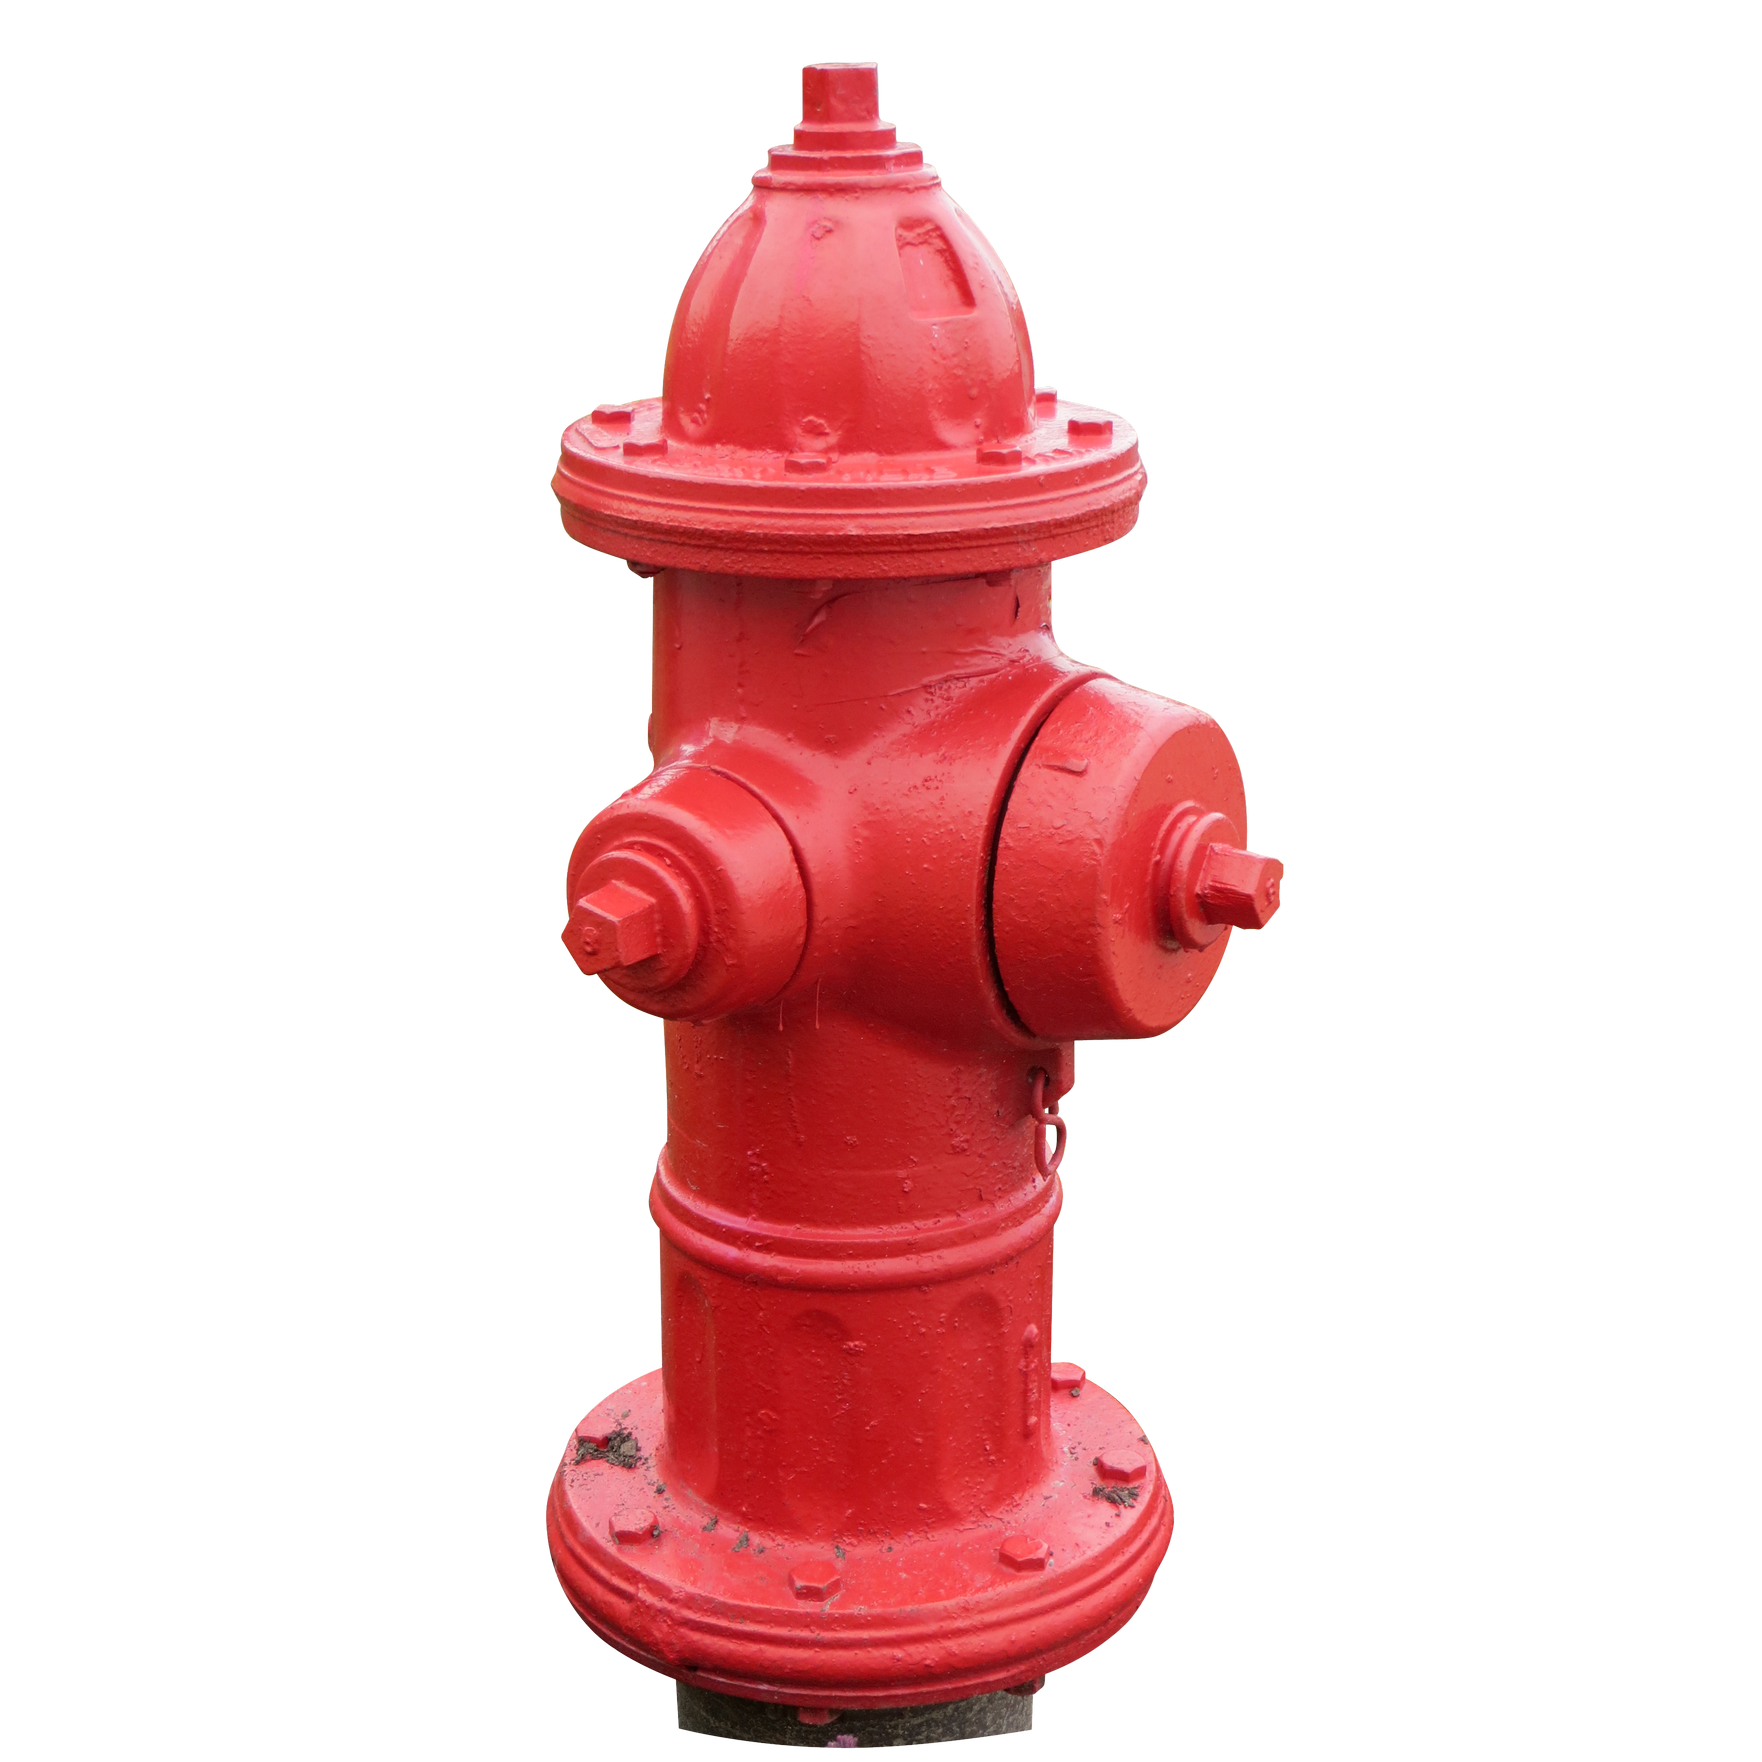 Fire Hydrant PNG Image.